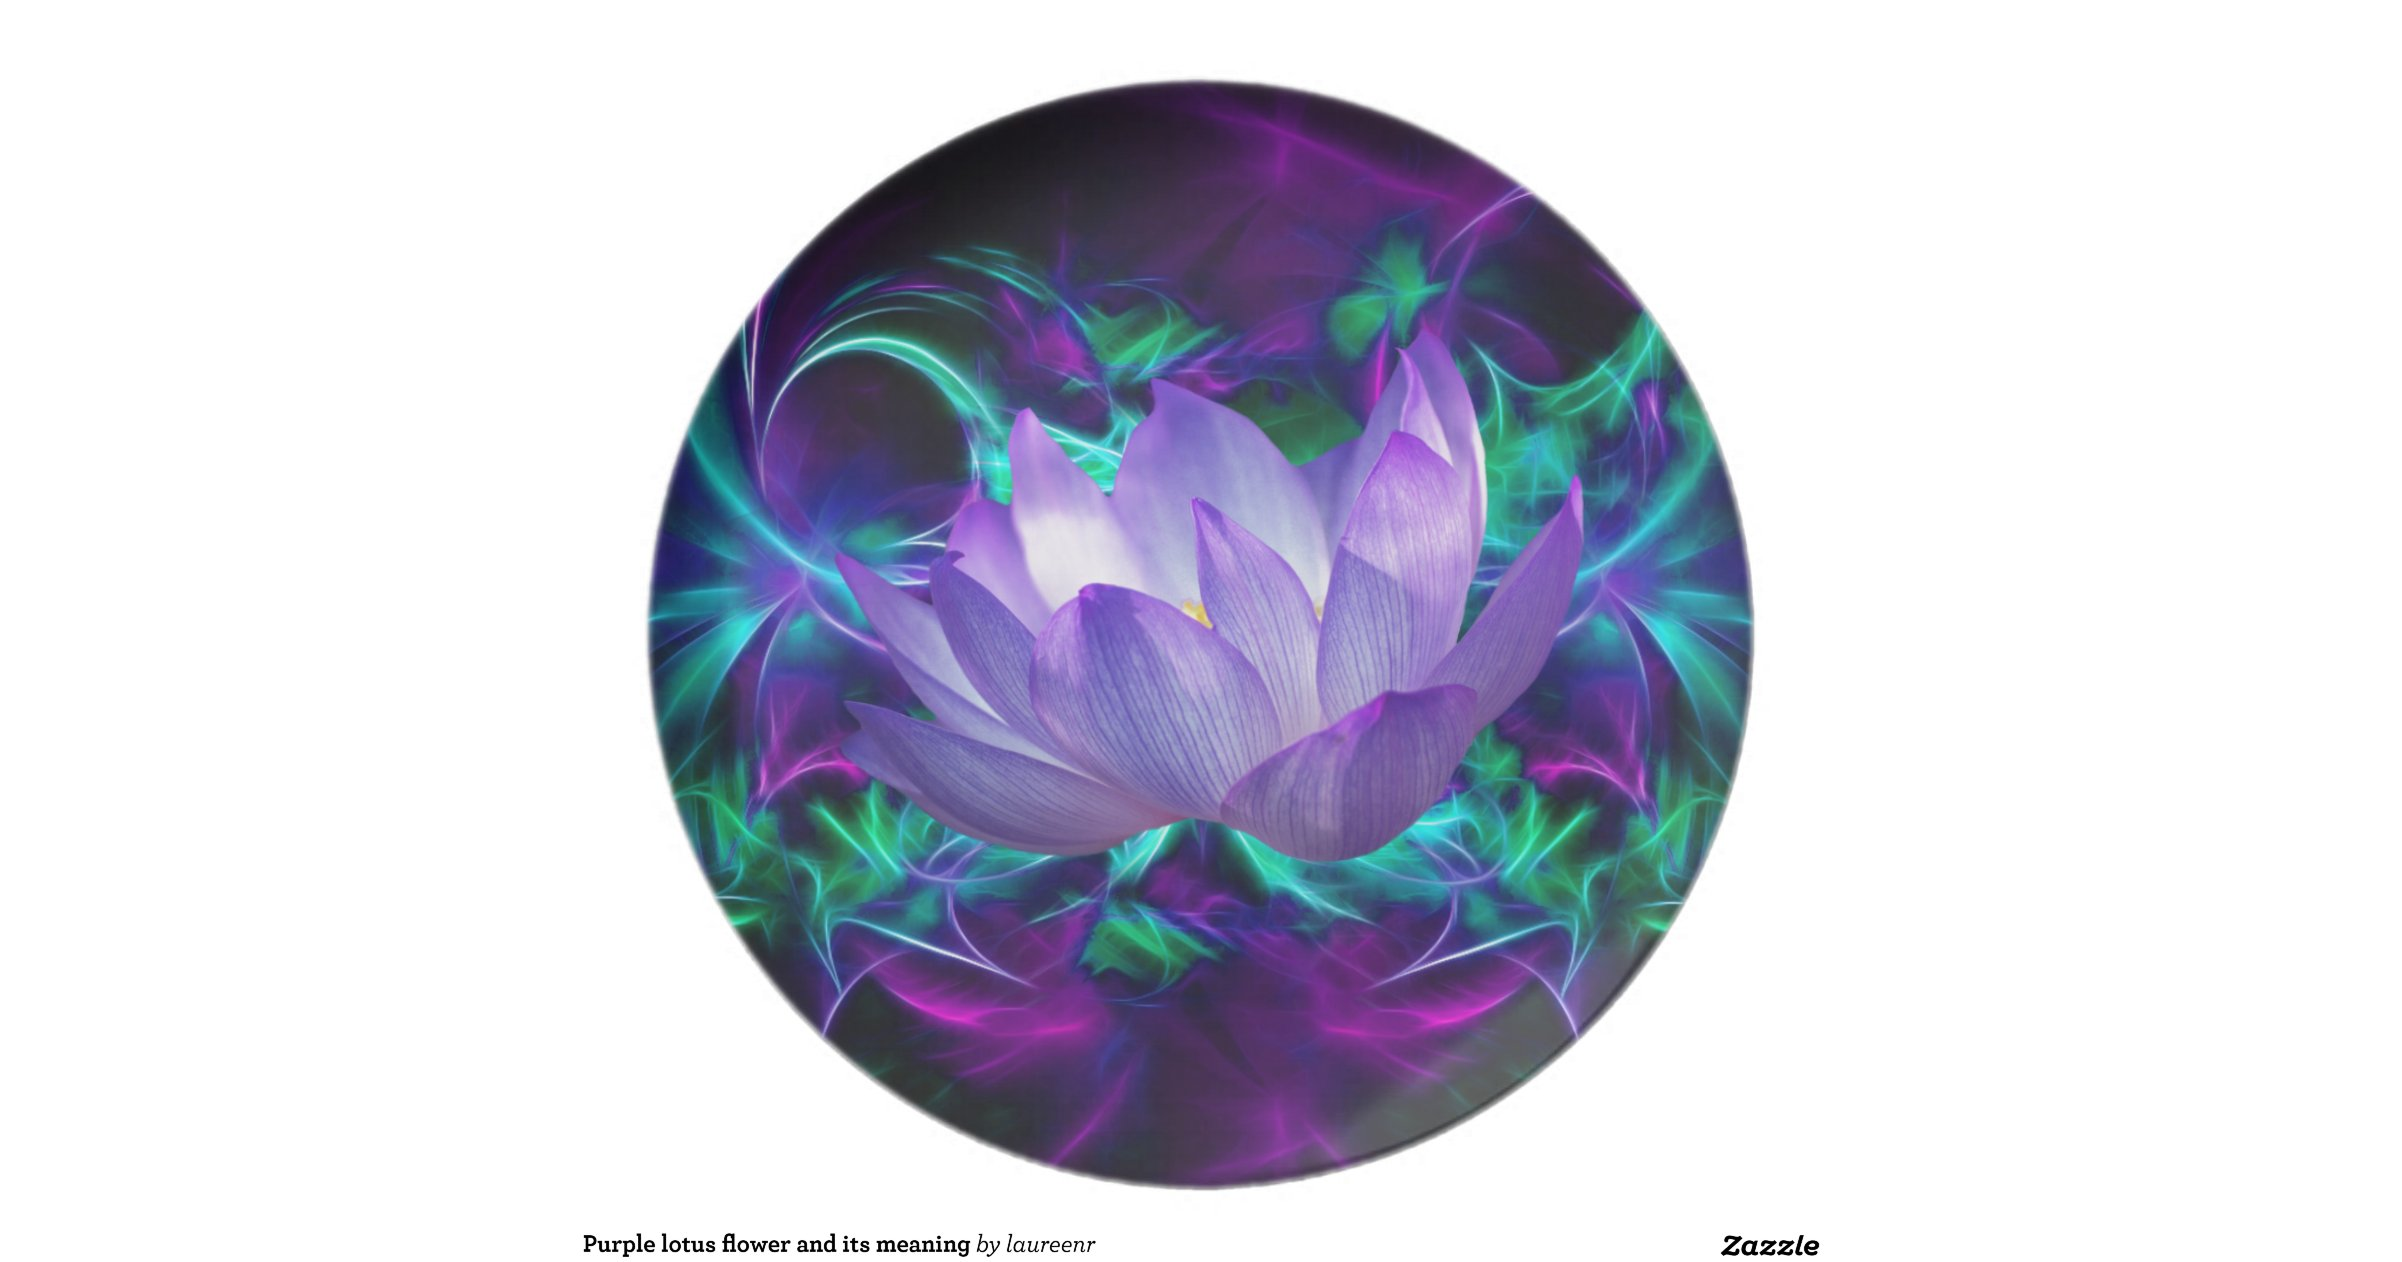 Home flower meaning 4543511 babyshowerthankyoucardsfo iris flower symbolism amp the meaning of irises in the izmirmasajfo